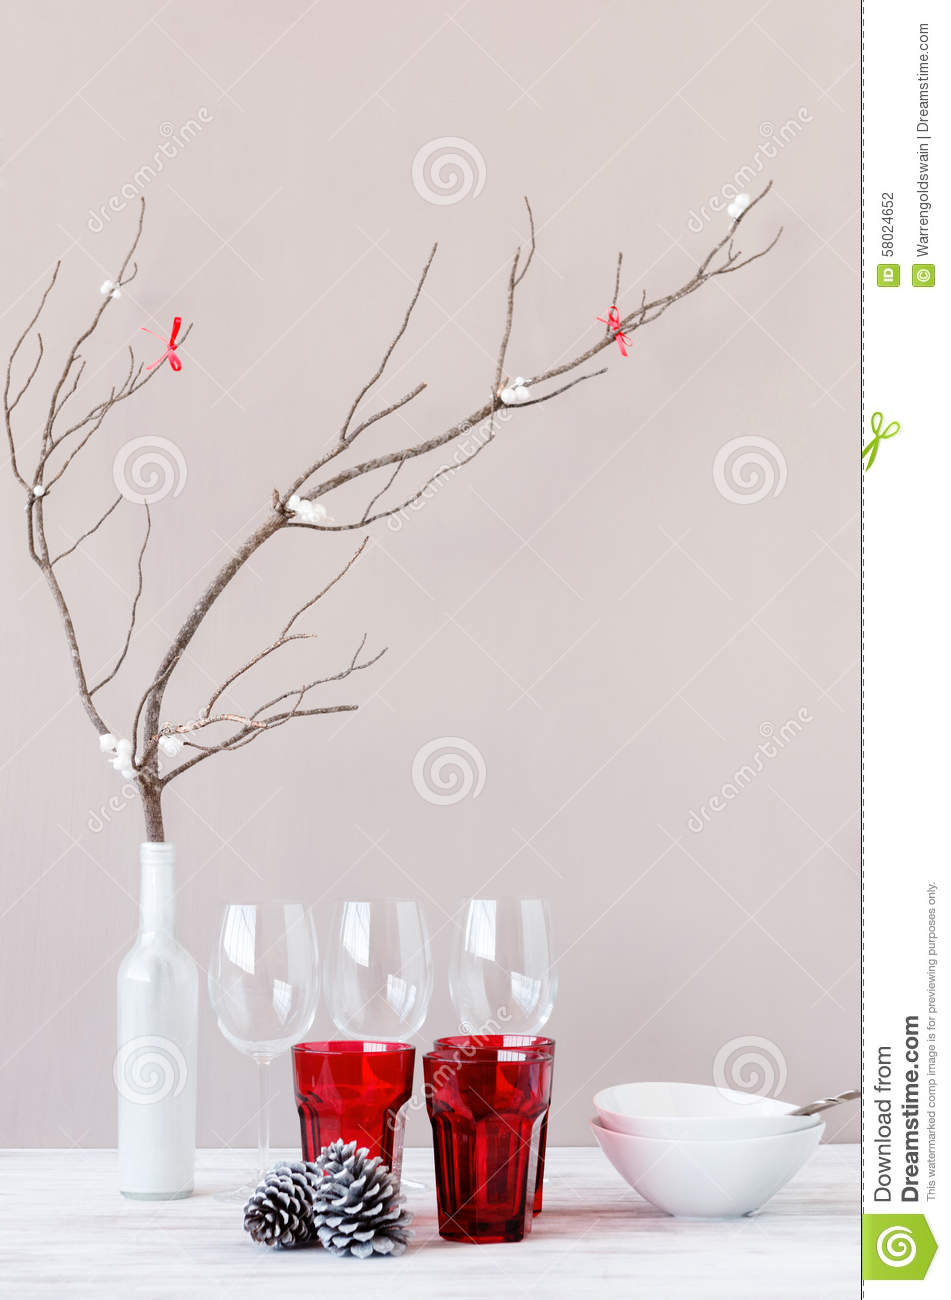 Elegant table setting display for christmas holiday theme for Minimalist xmas decorations